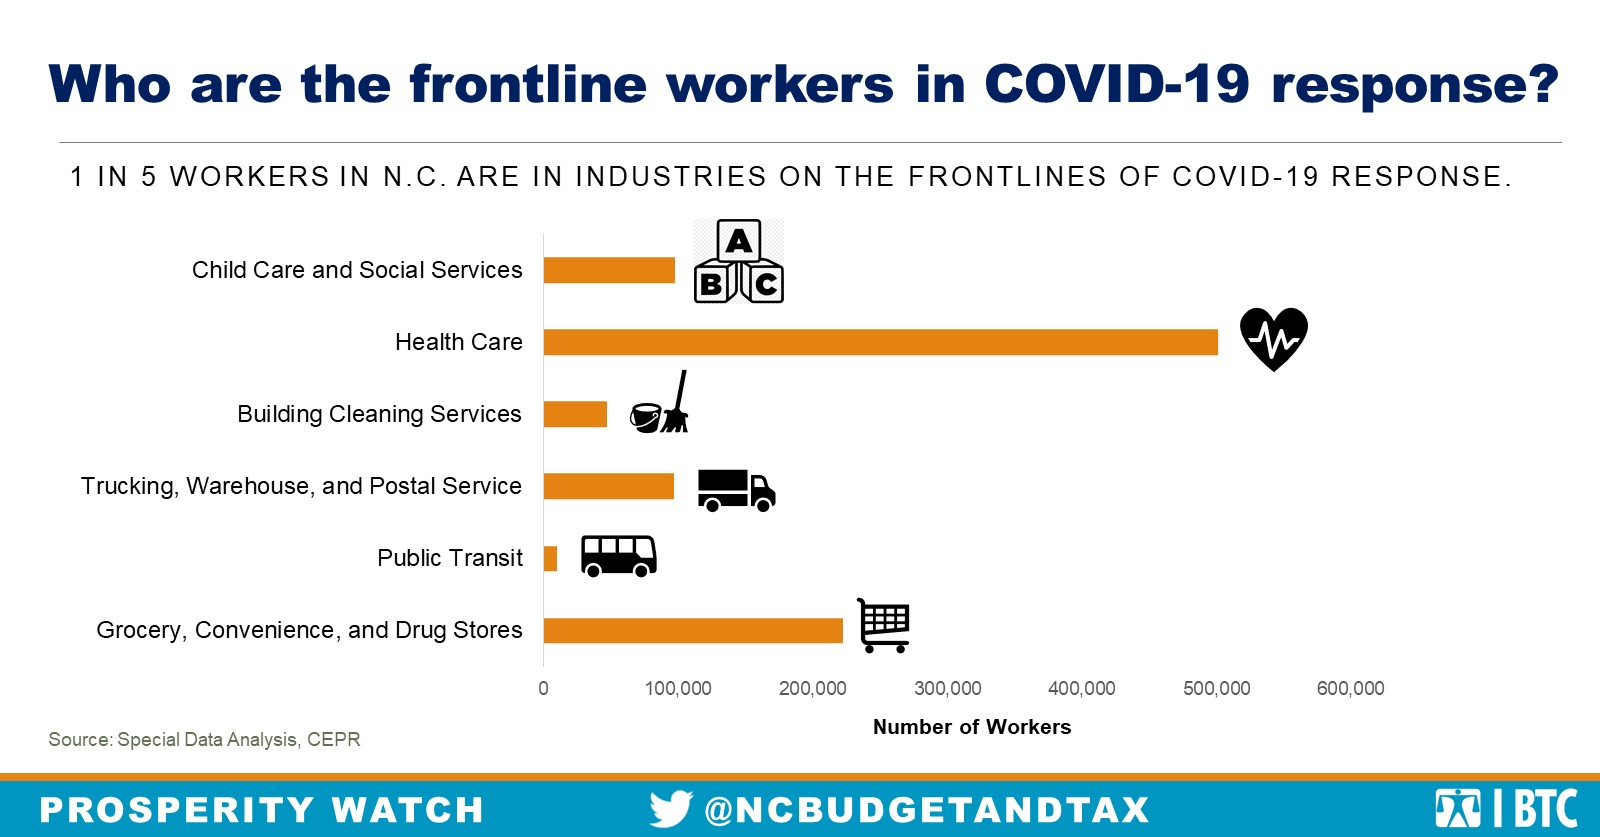 1 in 5 Workers in N.C. are in Industries on the frontlines of COVID-19 RESPONSE.